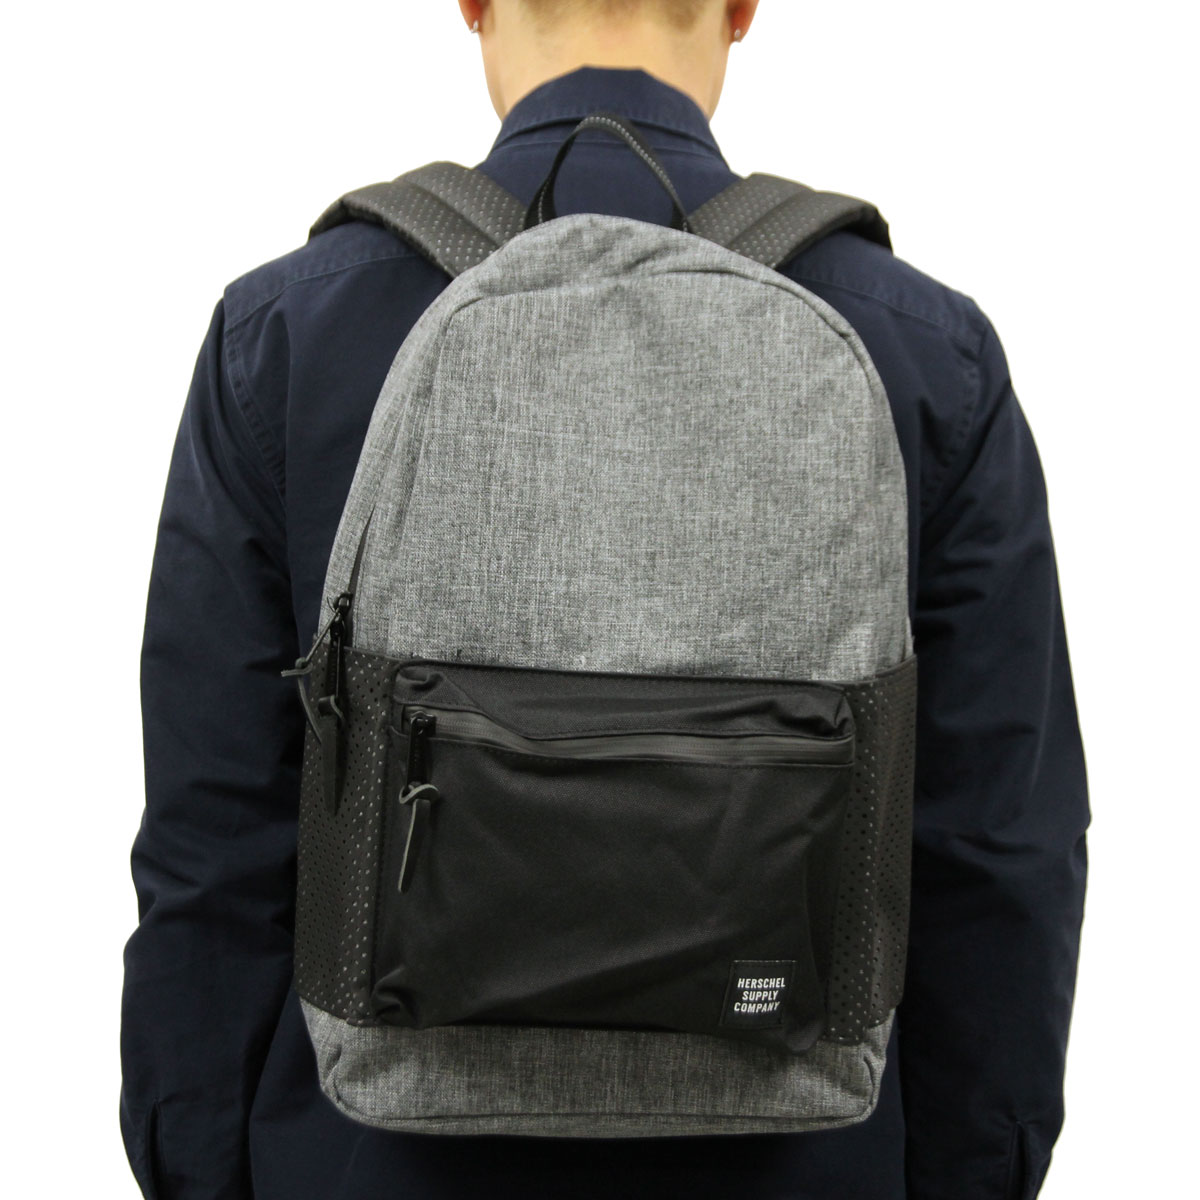 c3add8f52f9 Hershel supply Herschel Supply regular store backpack SETTLEMENT BACKPACK  ASPECT 10005-01554-OS RAVEN CROSSHATCH BLACK 23L